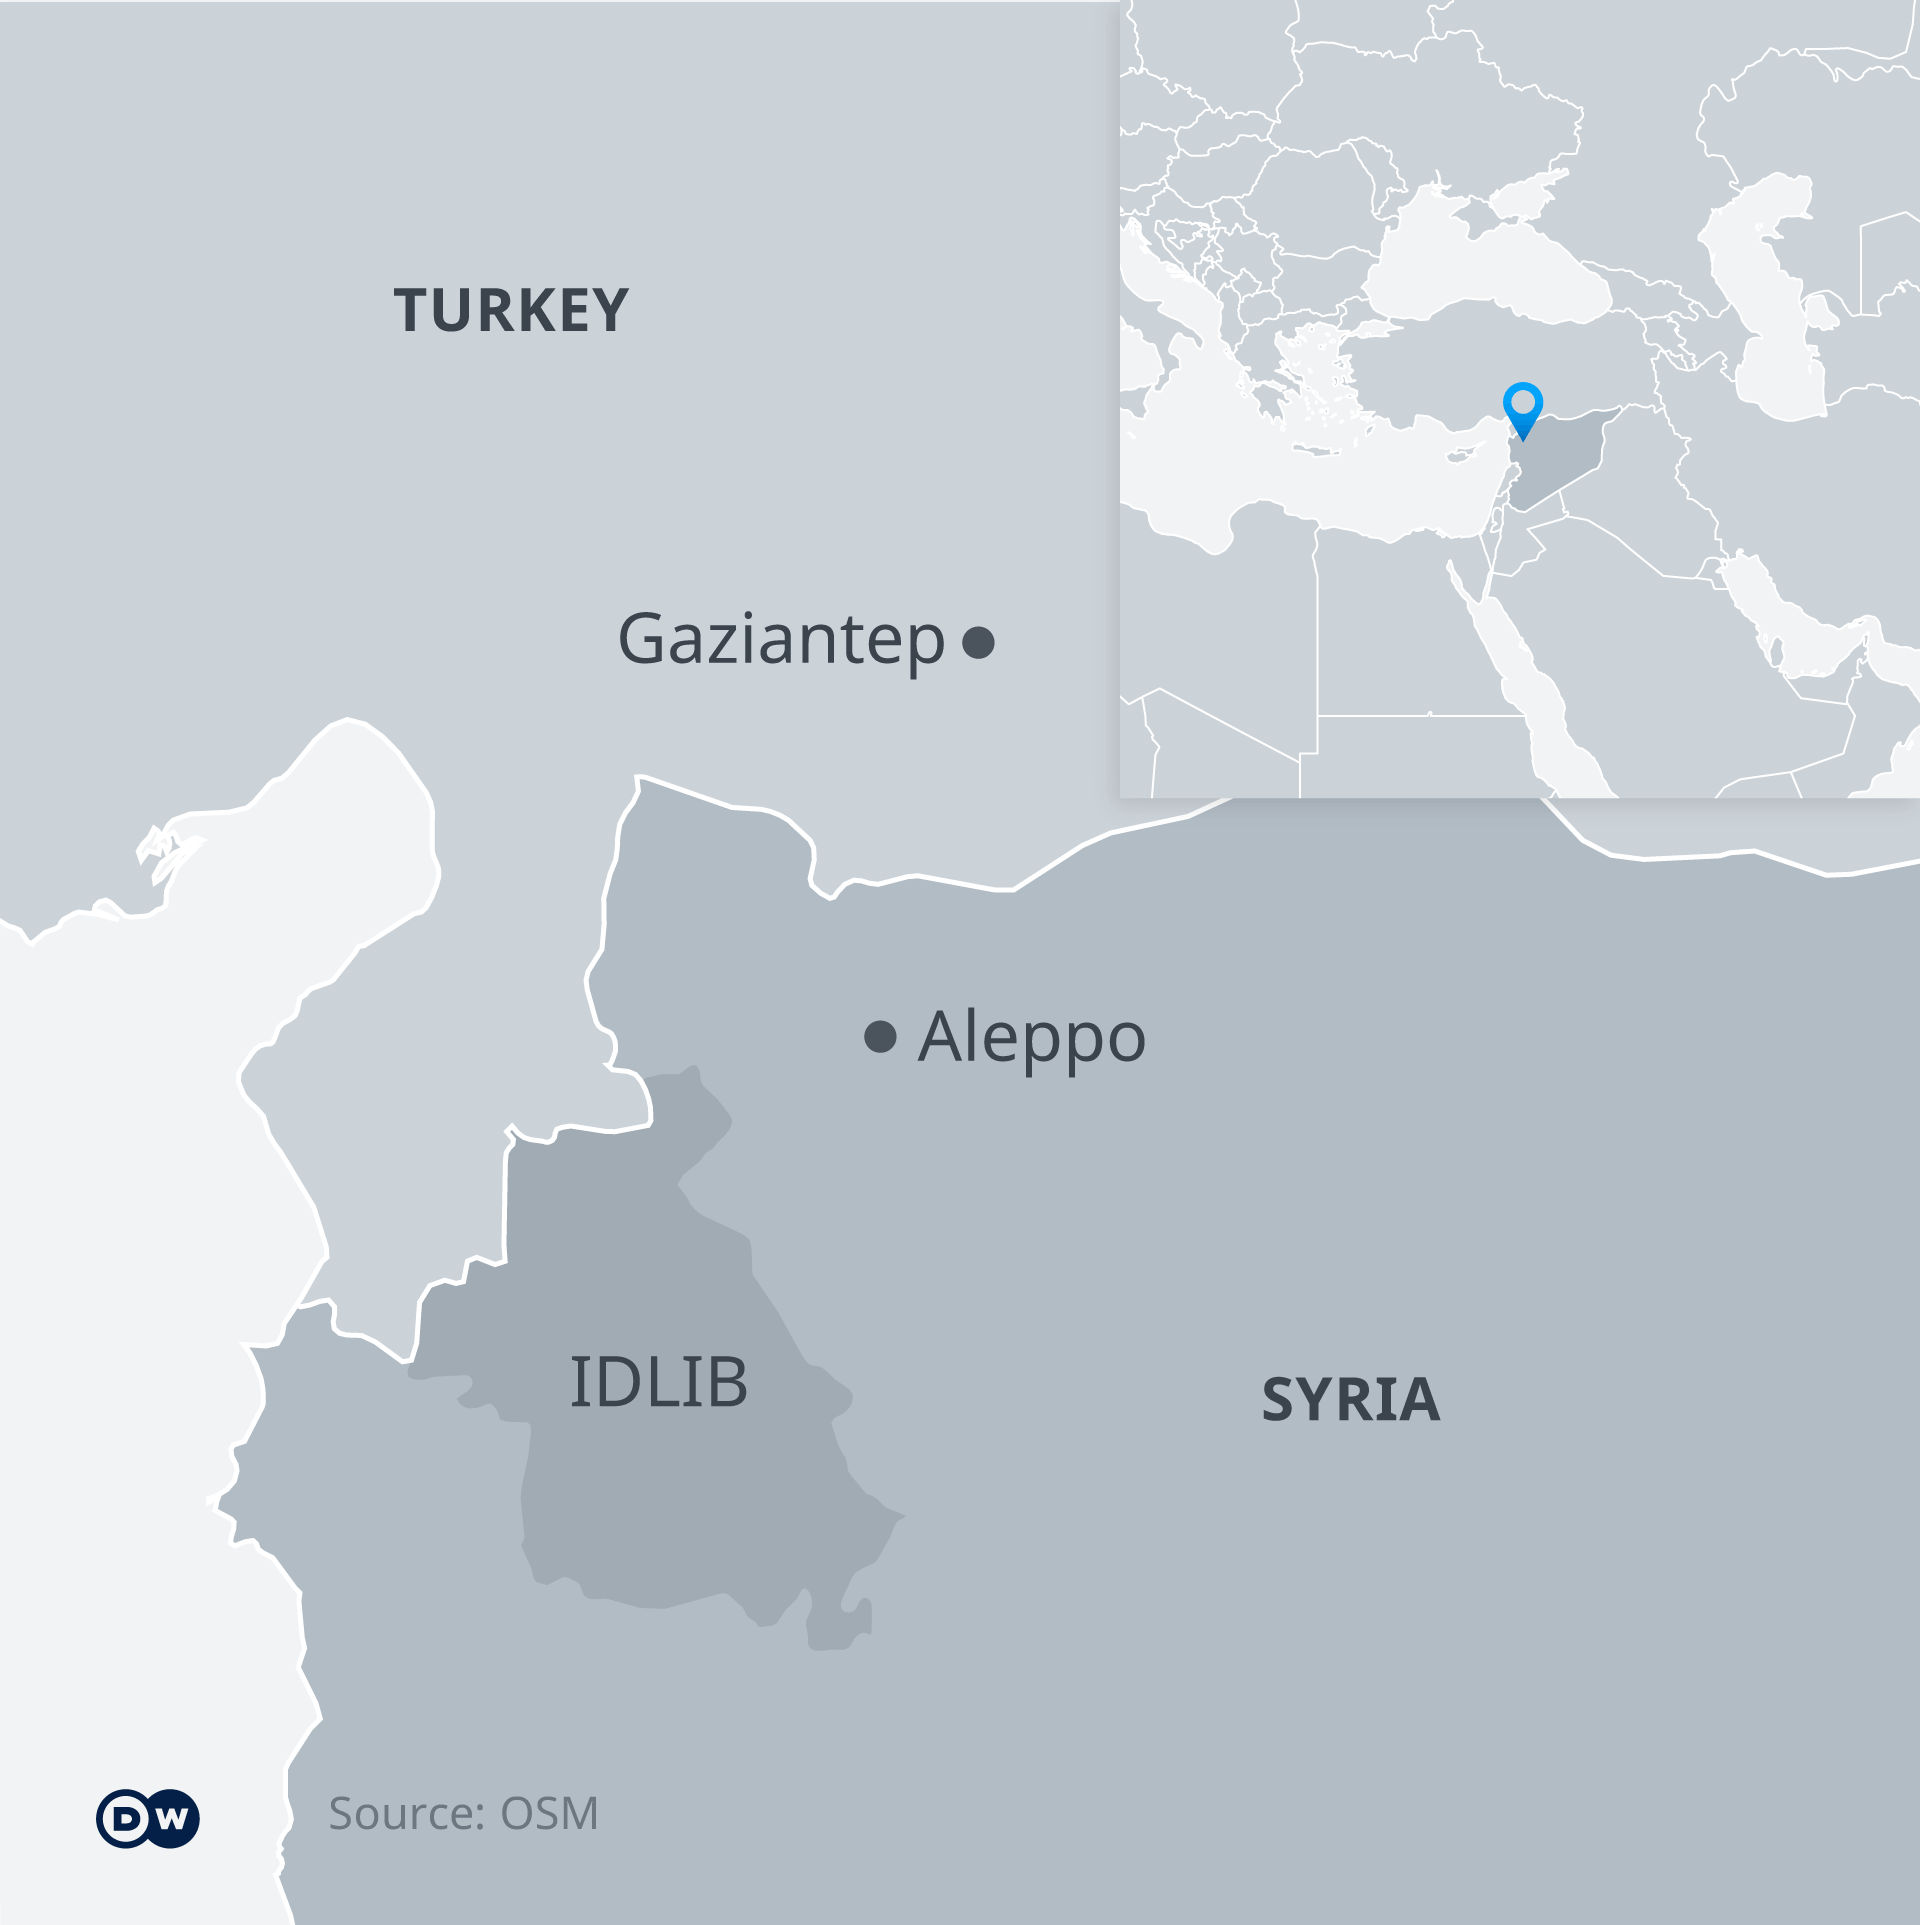 A map showing Turkey and Syria, highlighting Idlib, Aleppo and Gaziantep